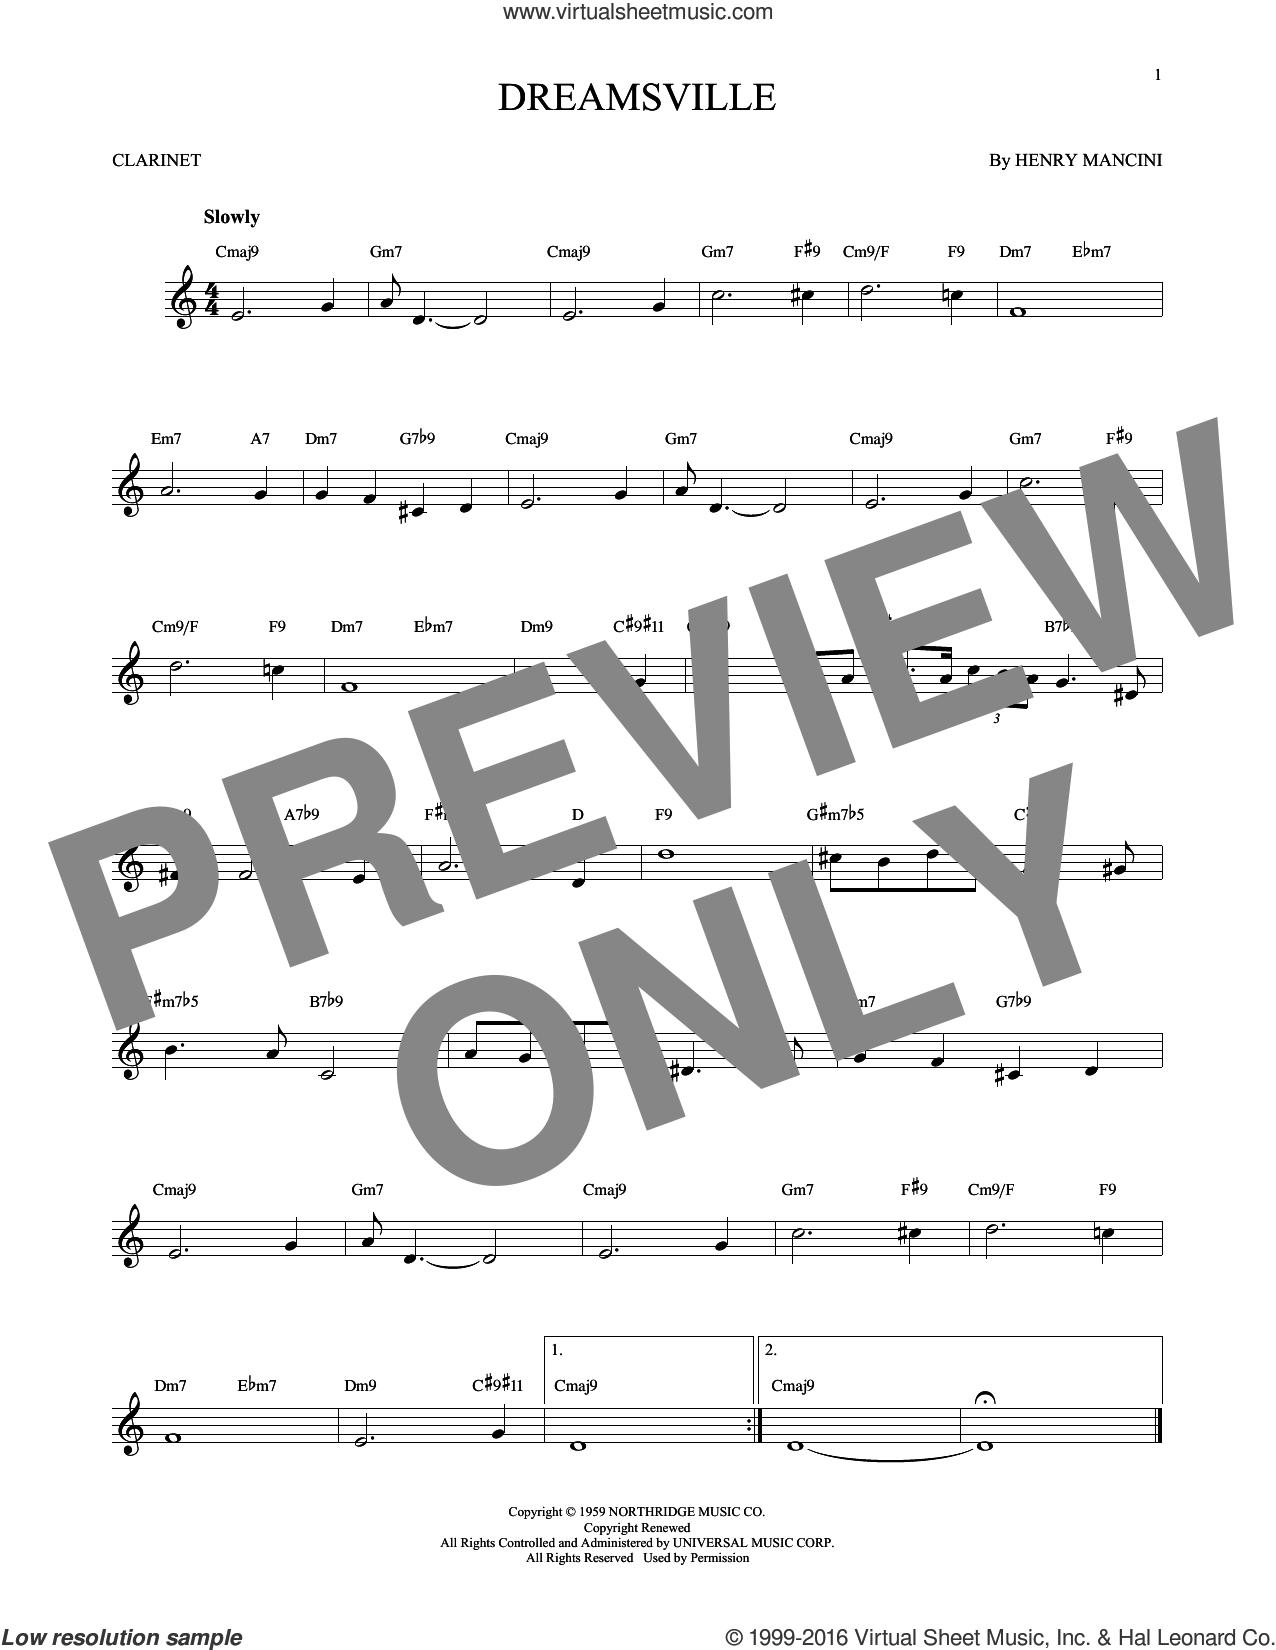 Dreamsville sheet music for clarinet solo by Henry Mancini, intermediate skill level